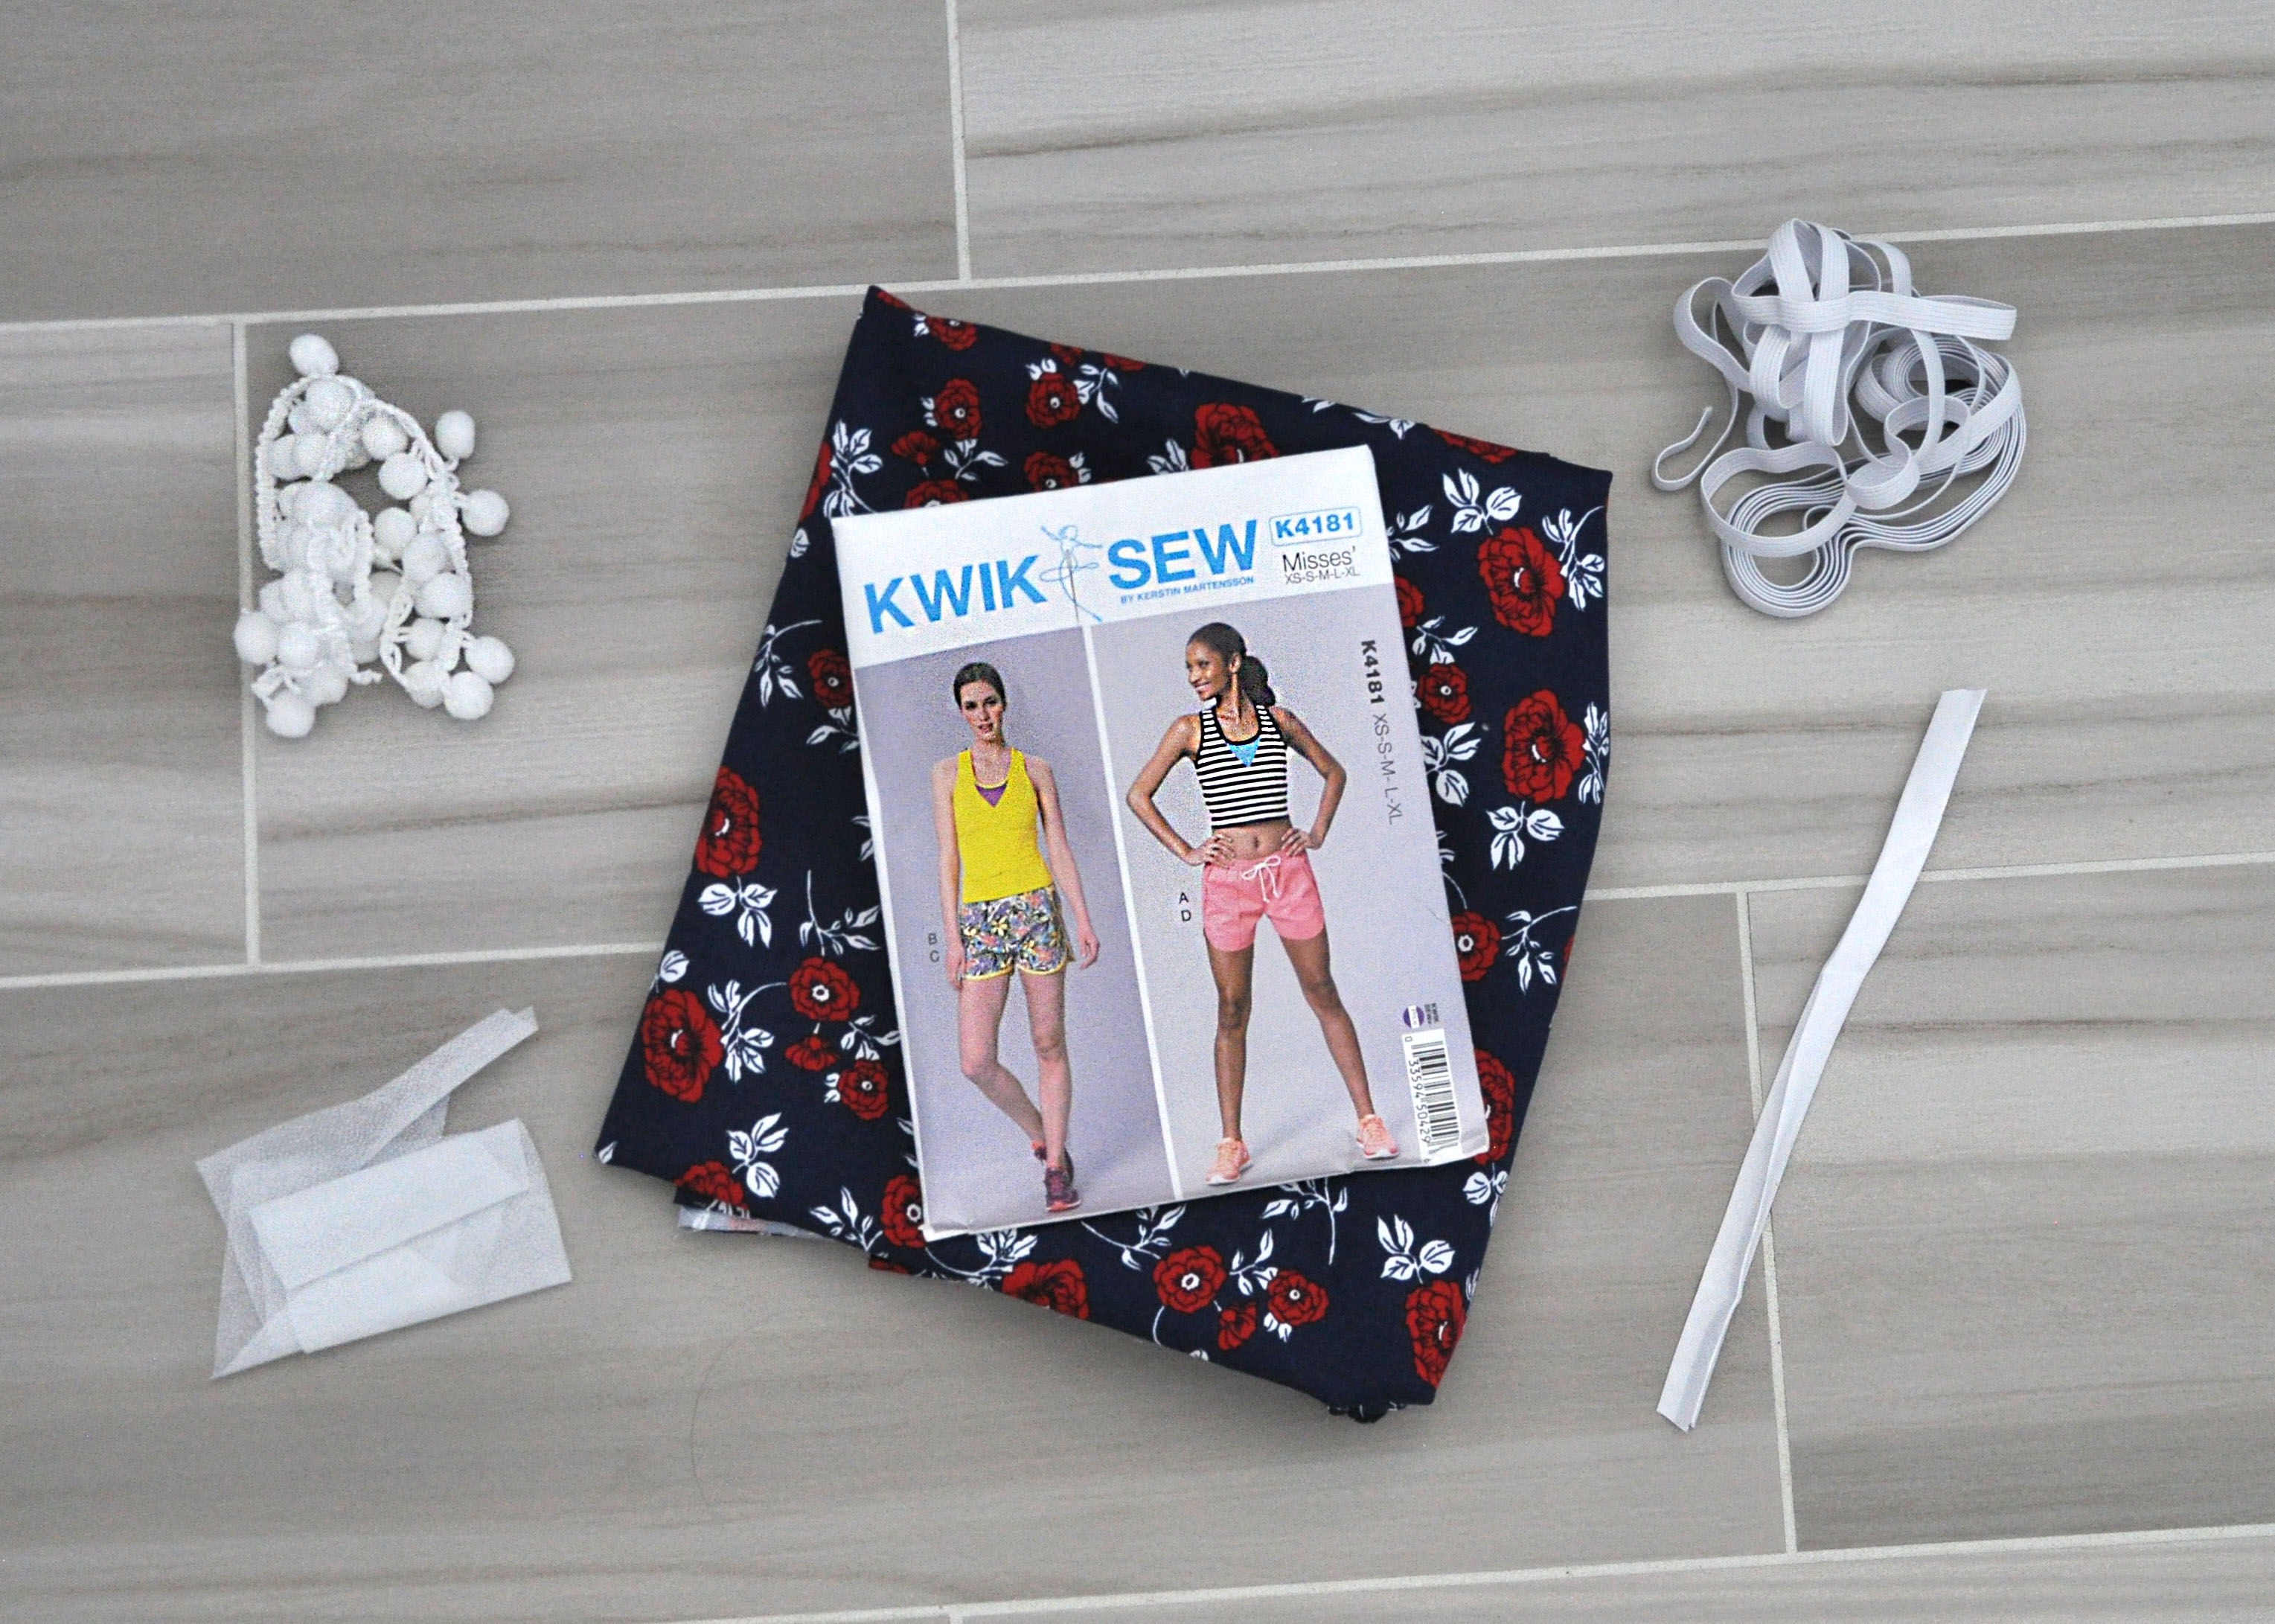 DIY pom pom shorts with @JOANN and kwiksew k4181. #handmadewithJOANN